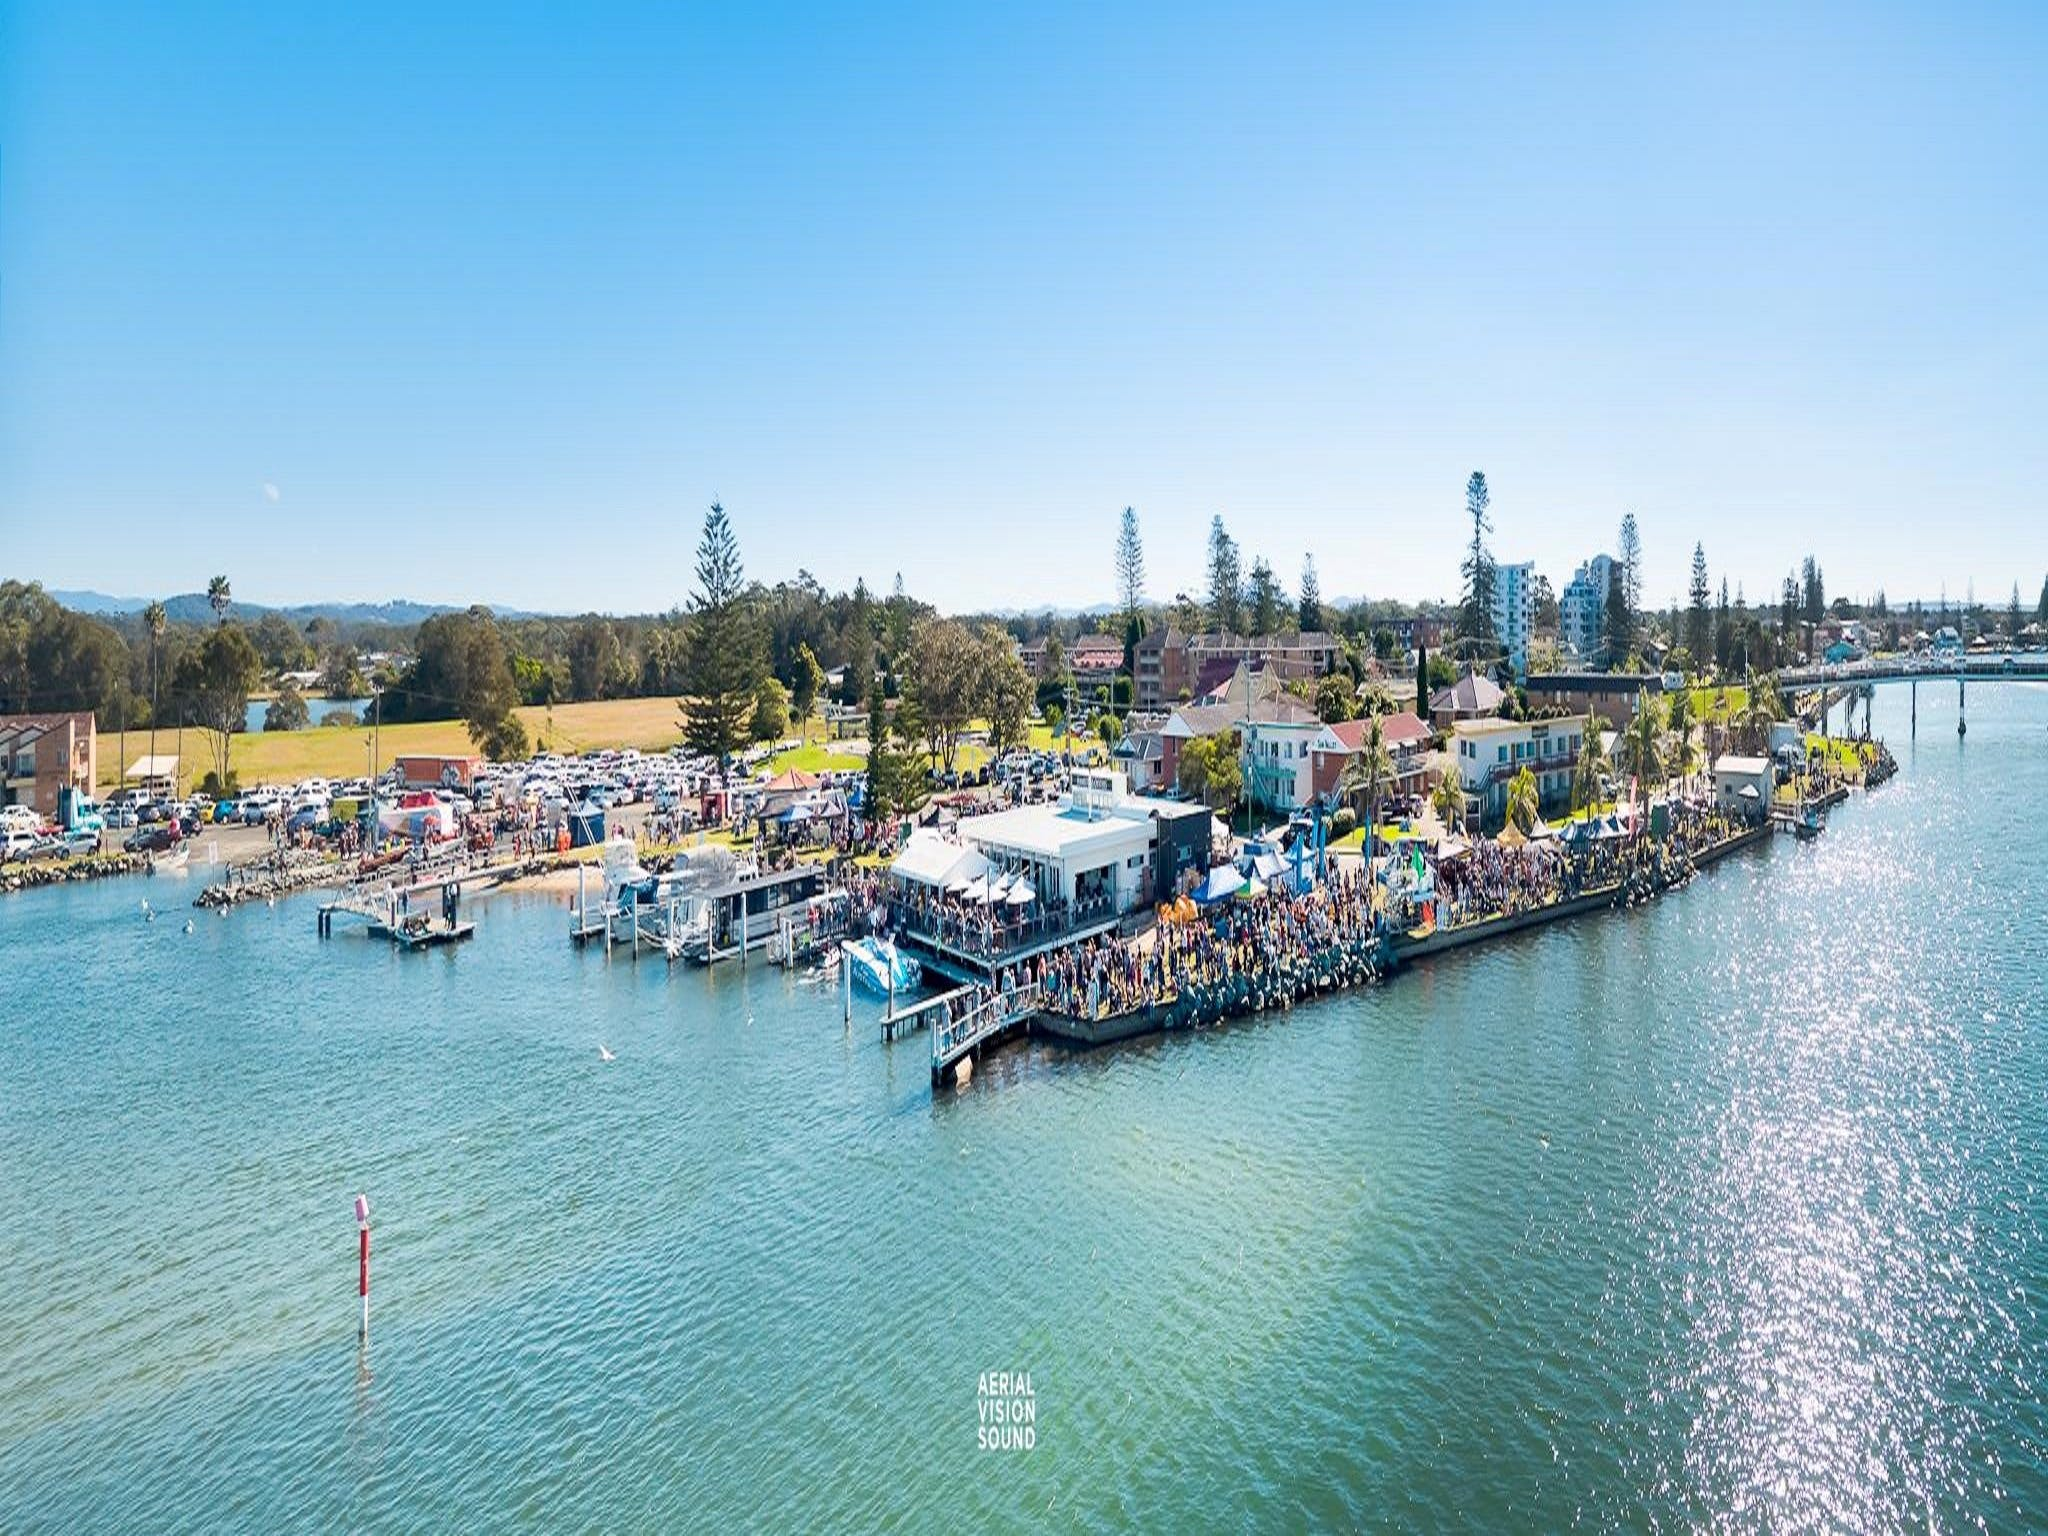 Fred Williams Aquatic Festival - New South Wales Tourism